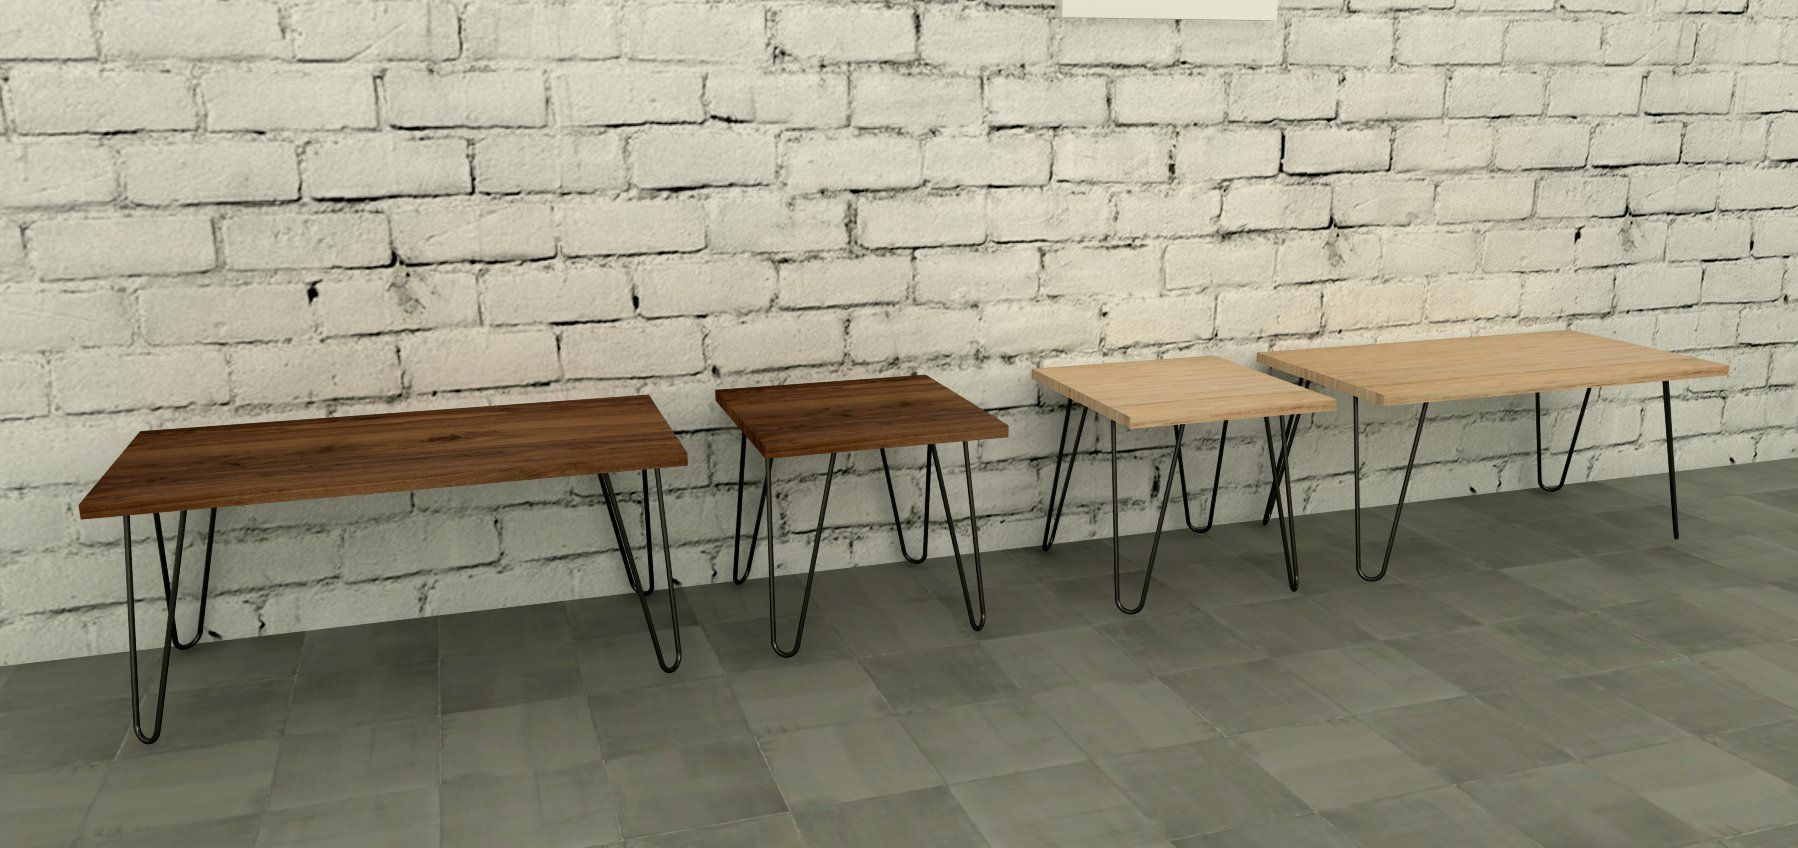 Hairpin Leg Coffee Tables Are Handmade In Australia Ideal For Your Home Or Office Can Choose